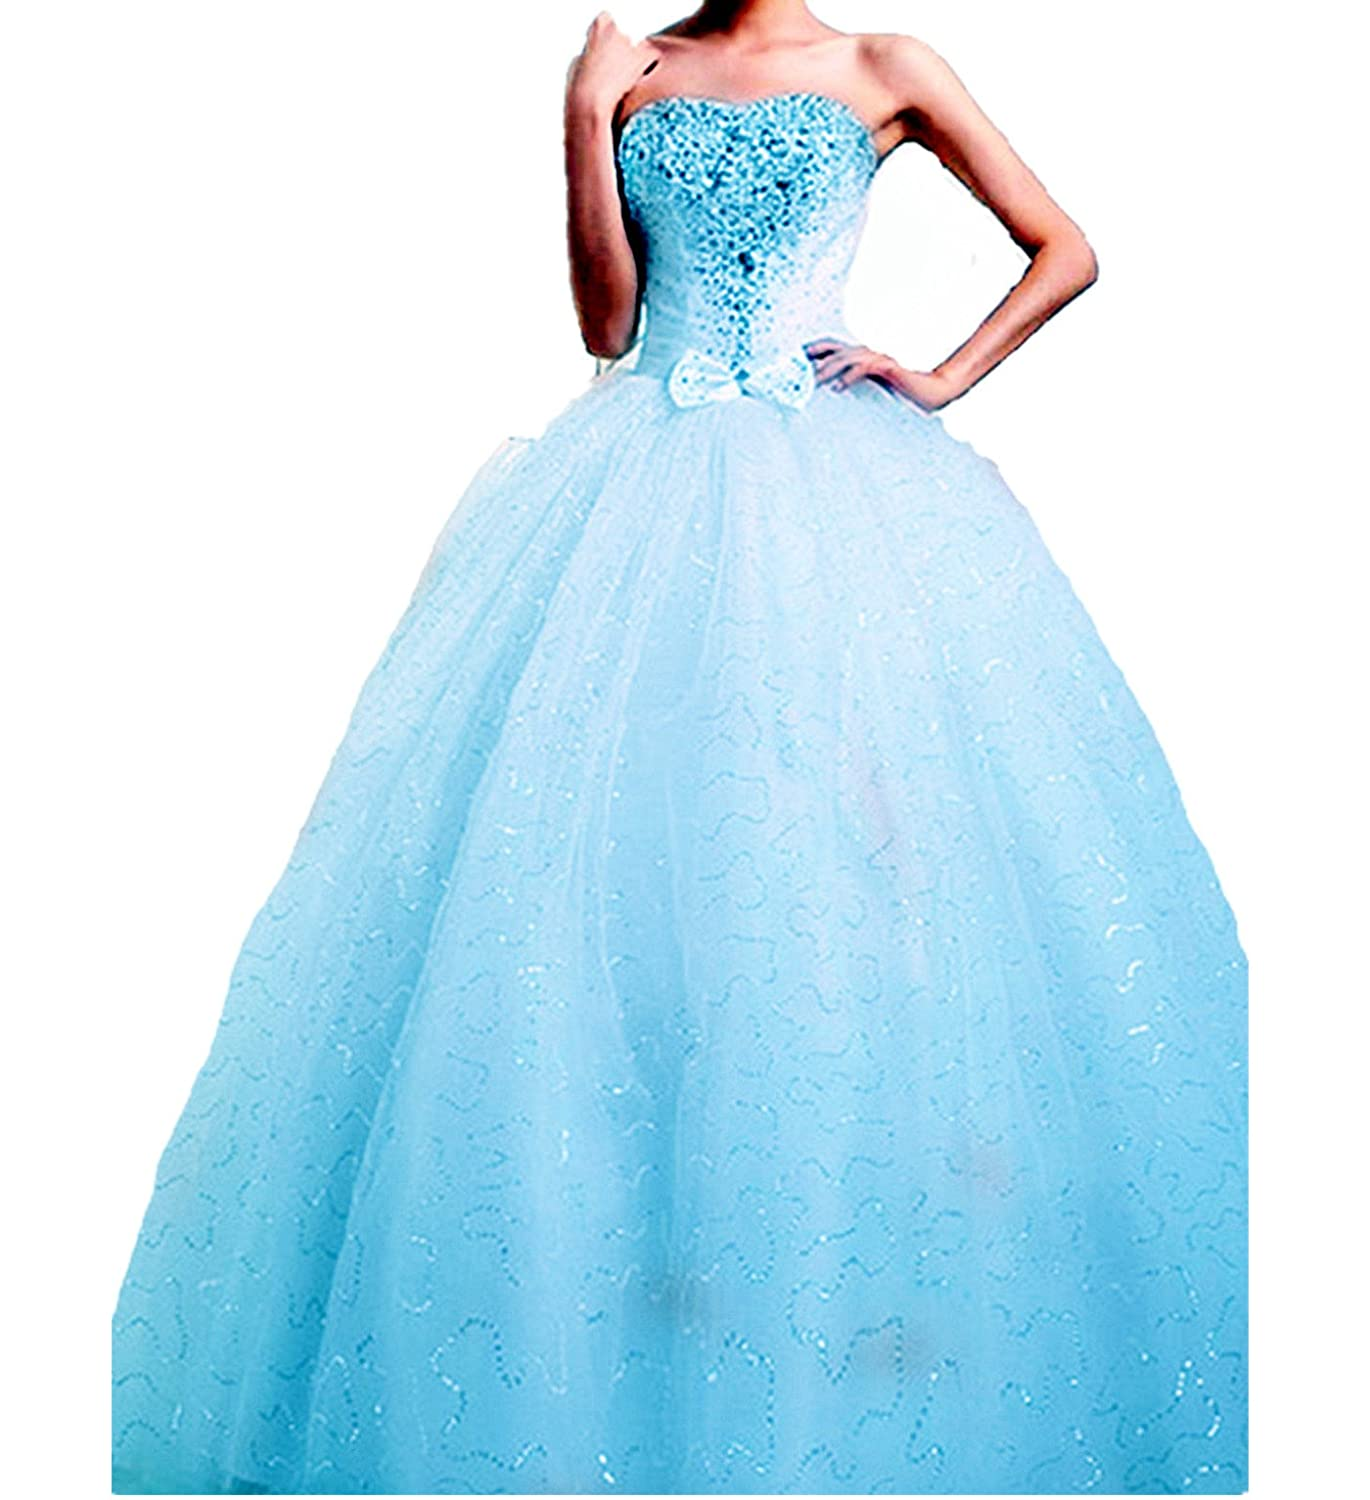 atopdress W09 BALL EVENING prom sequined gown evening dress size 8 ...